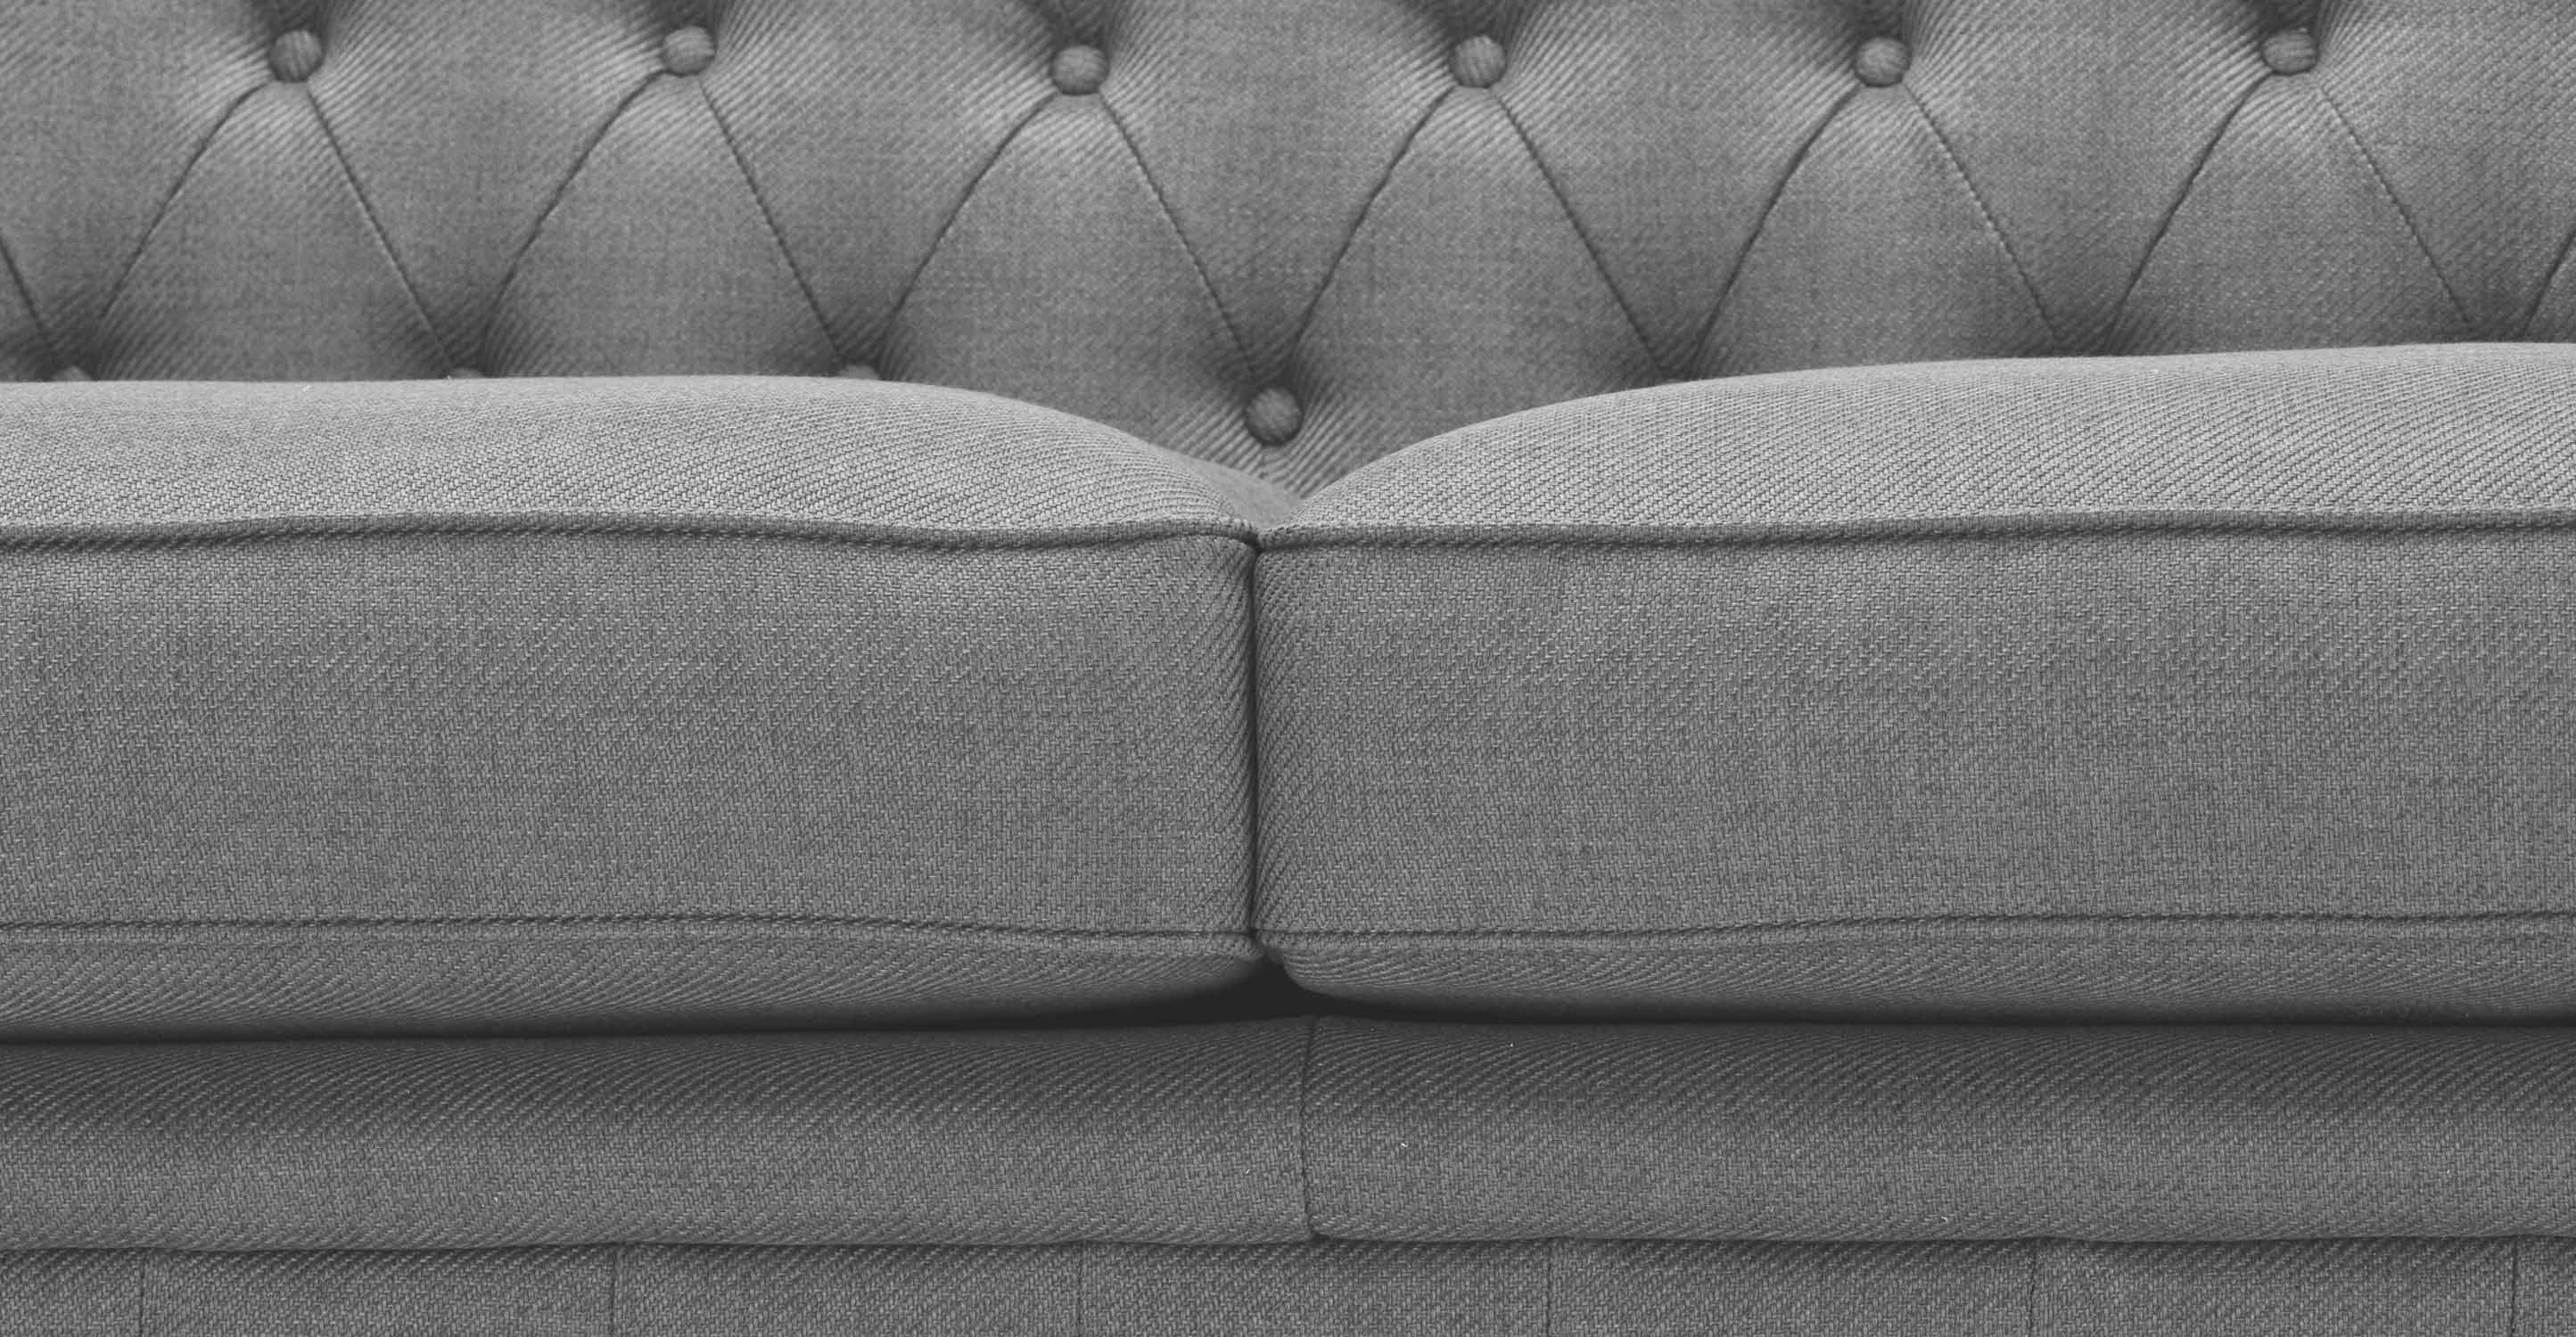 Chesterfield Sofa Texture Branagh 3 Seater Grey Chesterfield Sofa Made